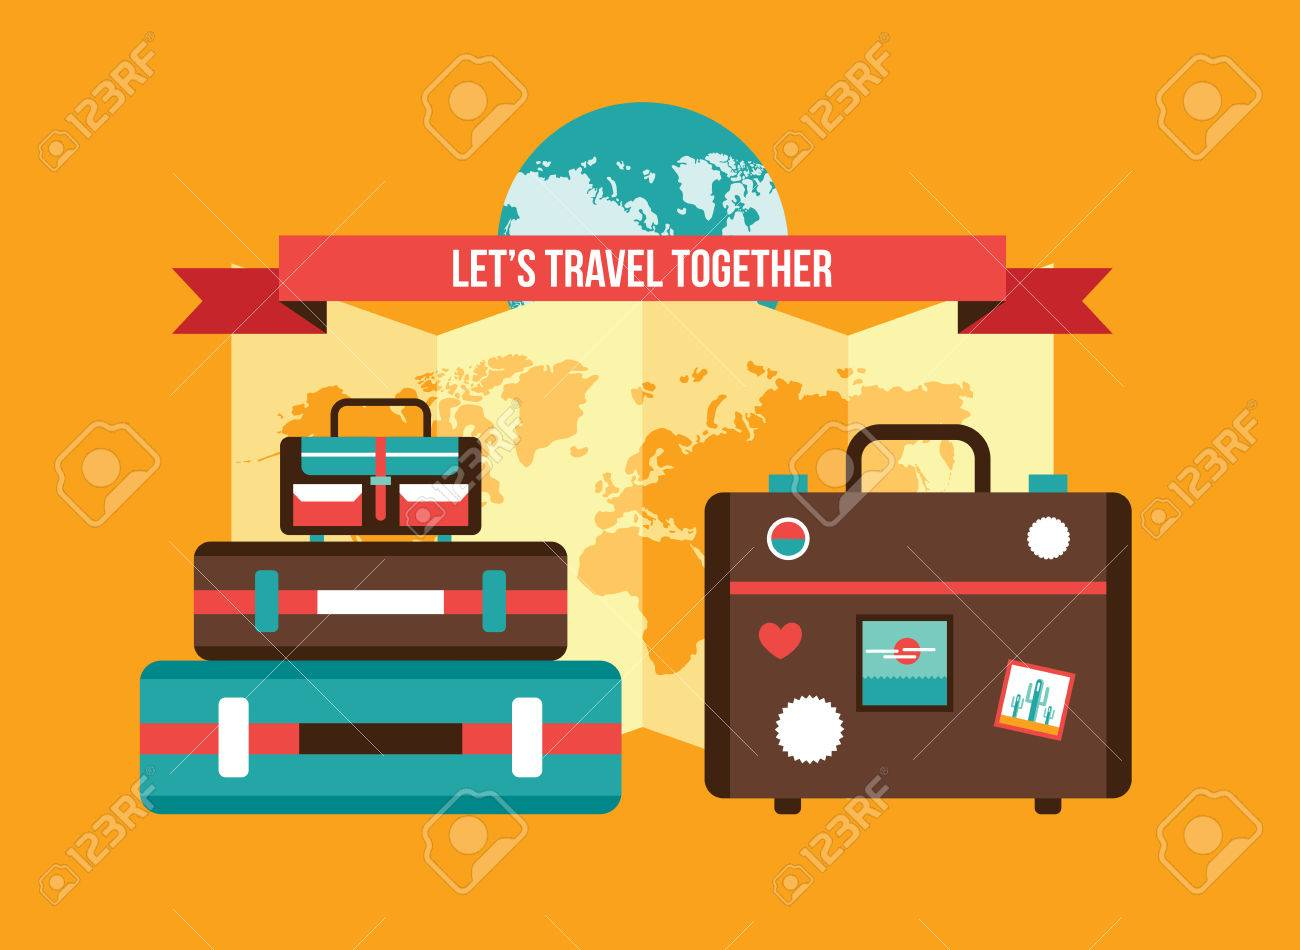 Background with bag suitcases world map vacation travel planning background with bag suitcases world map vacation travel planning concept illustration stock vector 52375713 gumiabroncs Image collections